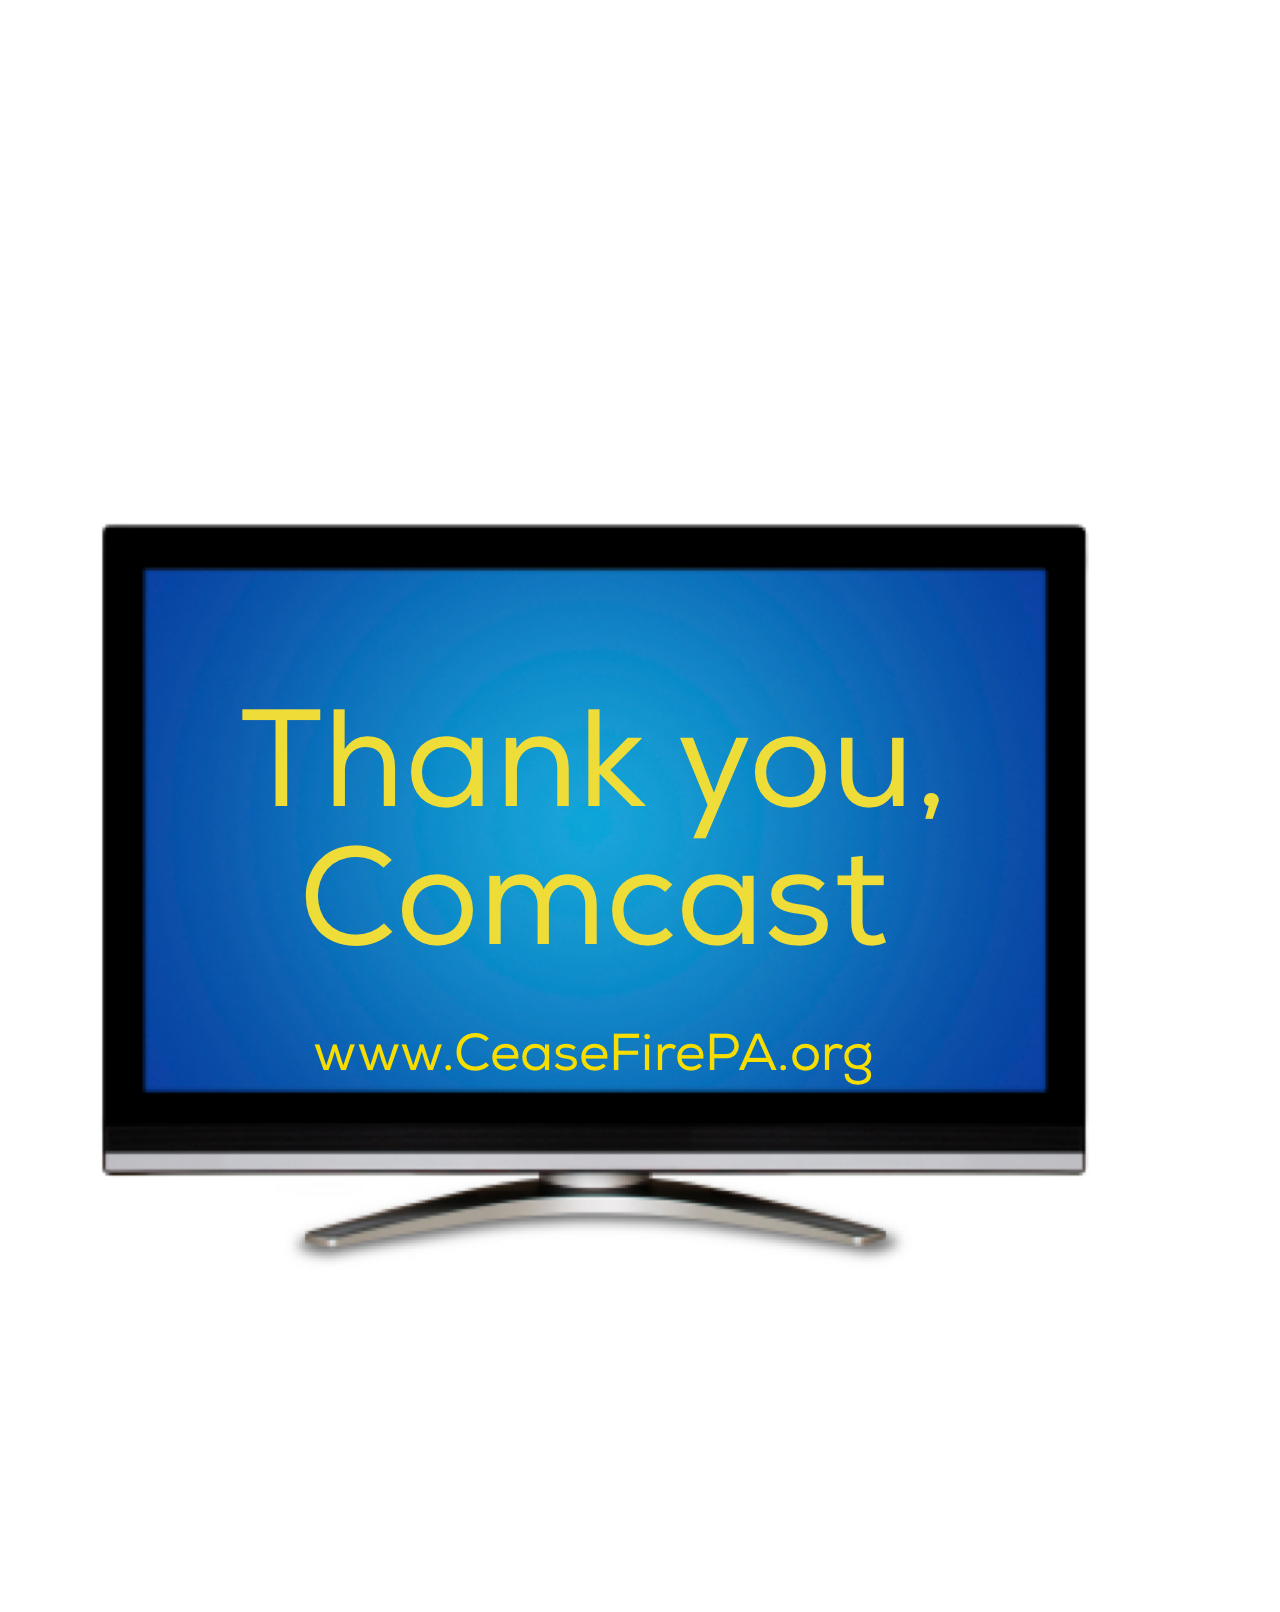 Why Are We Asking You to Thank a Cable Company?